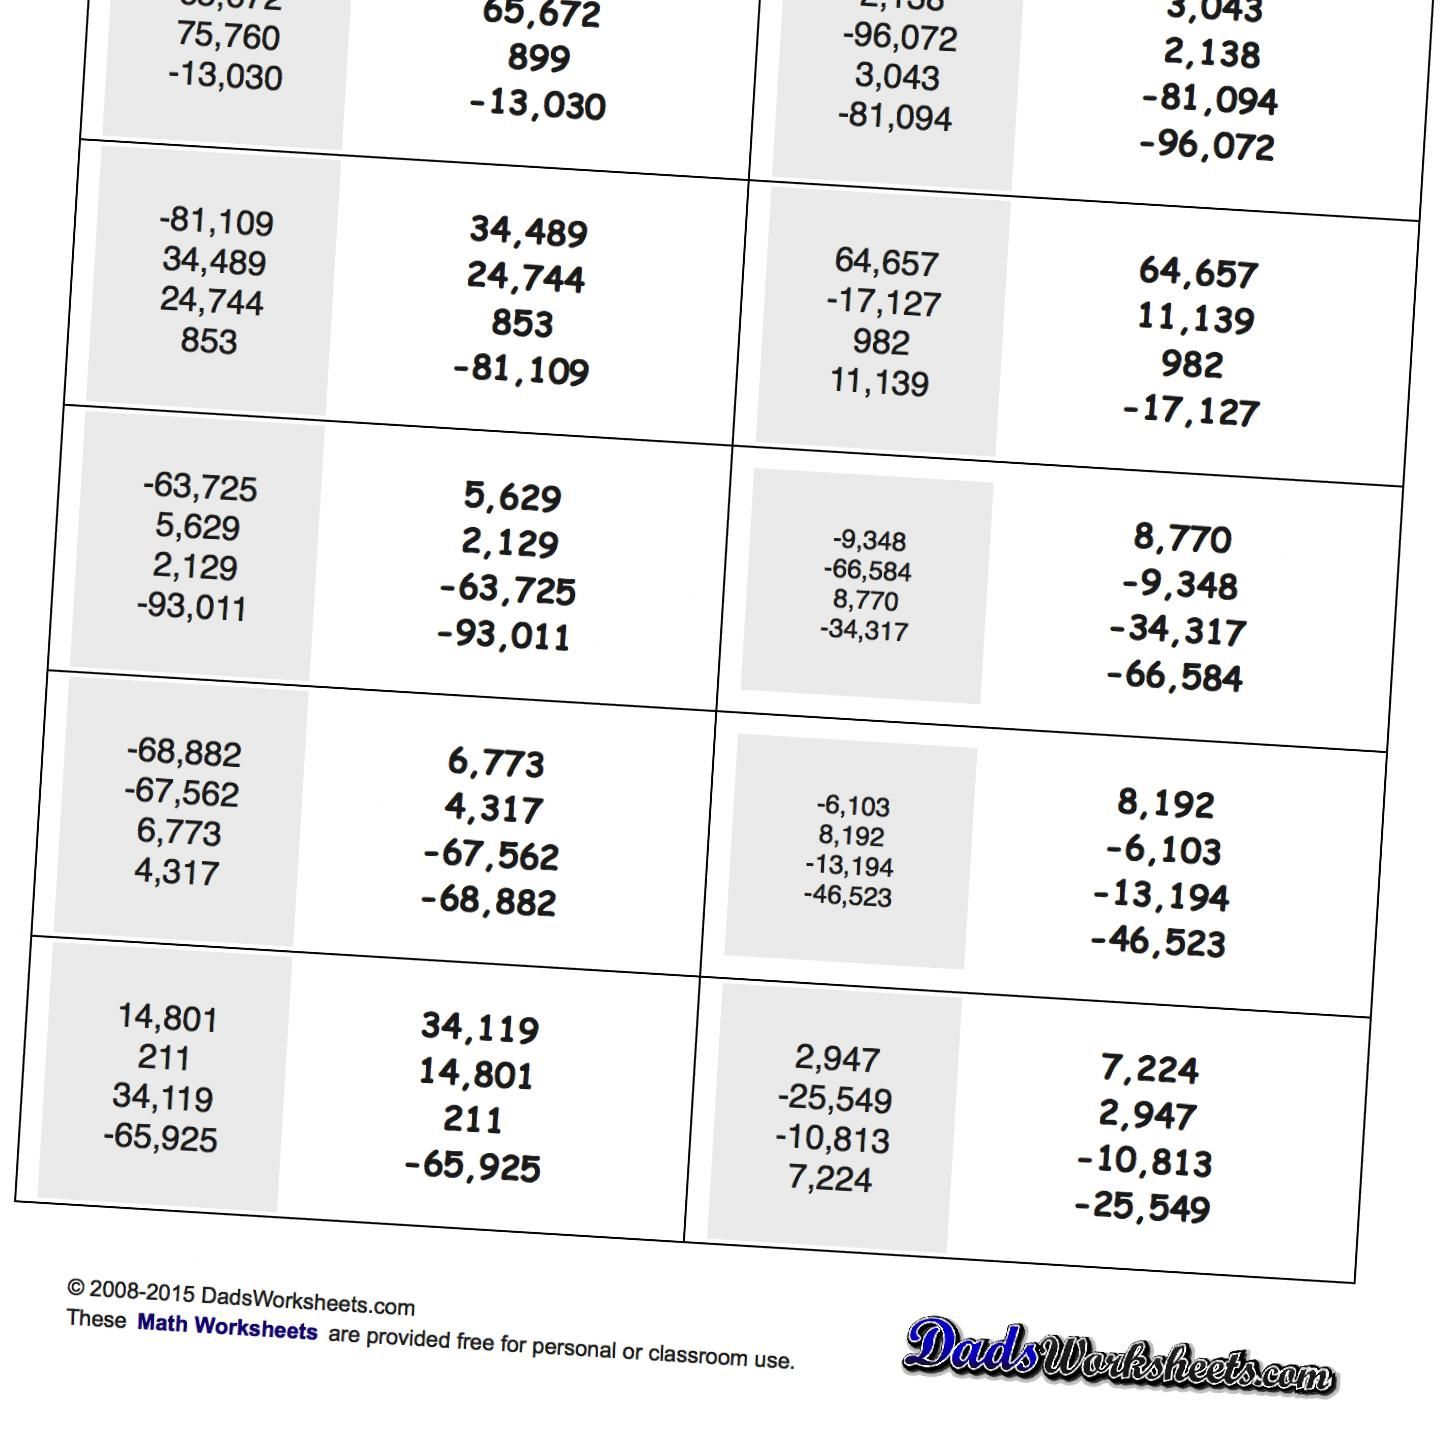 Math Worksheets Ordering Numbers With Positive And